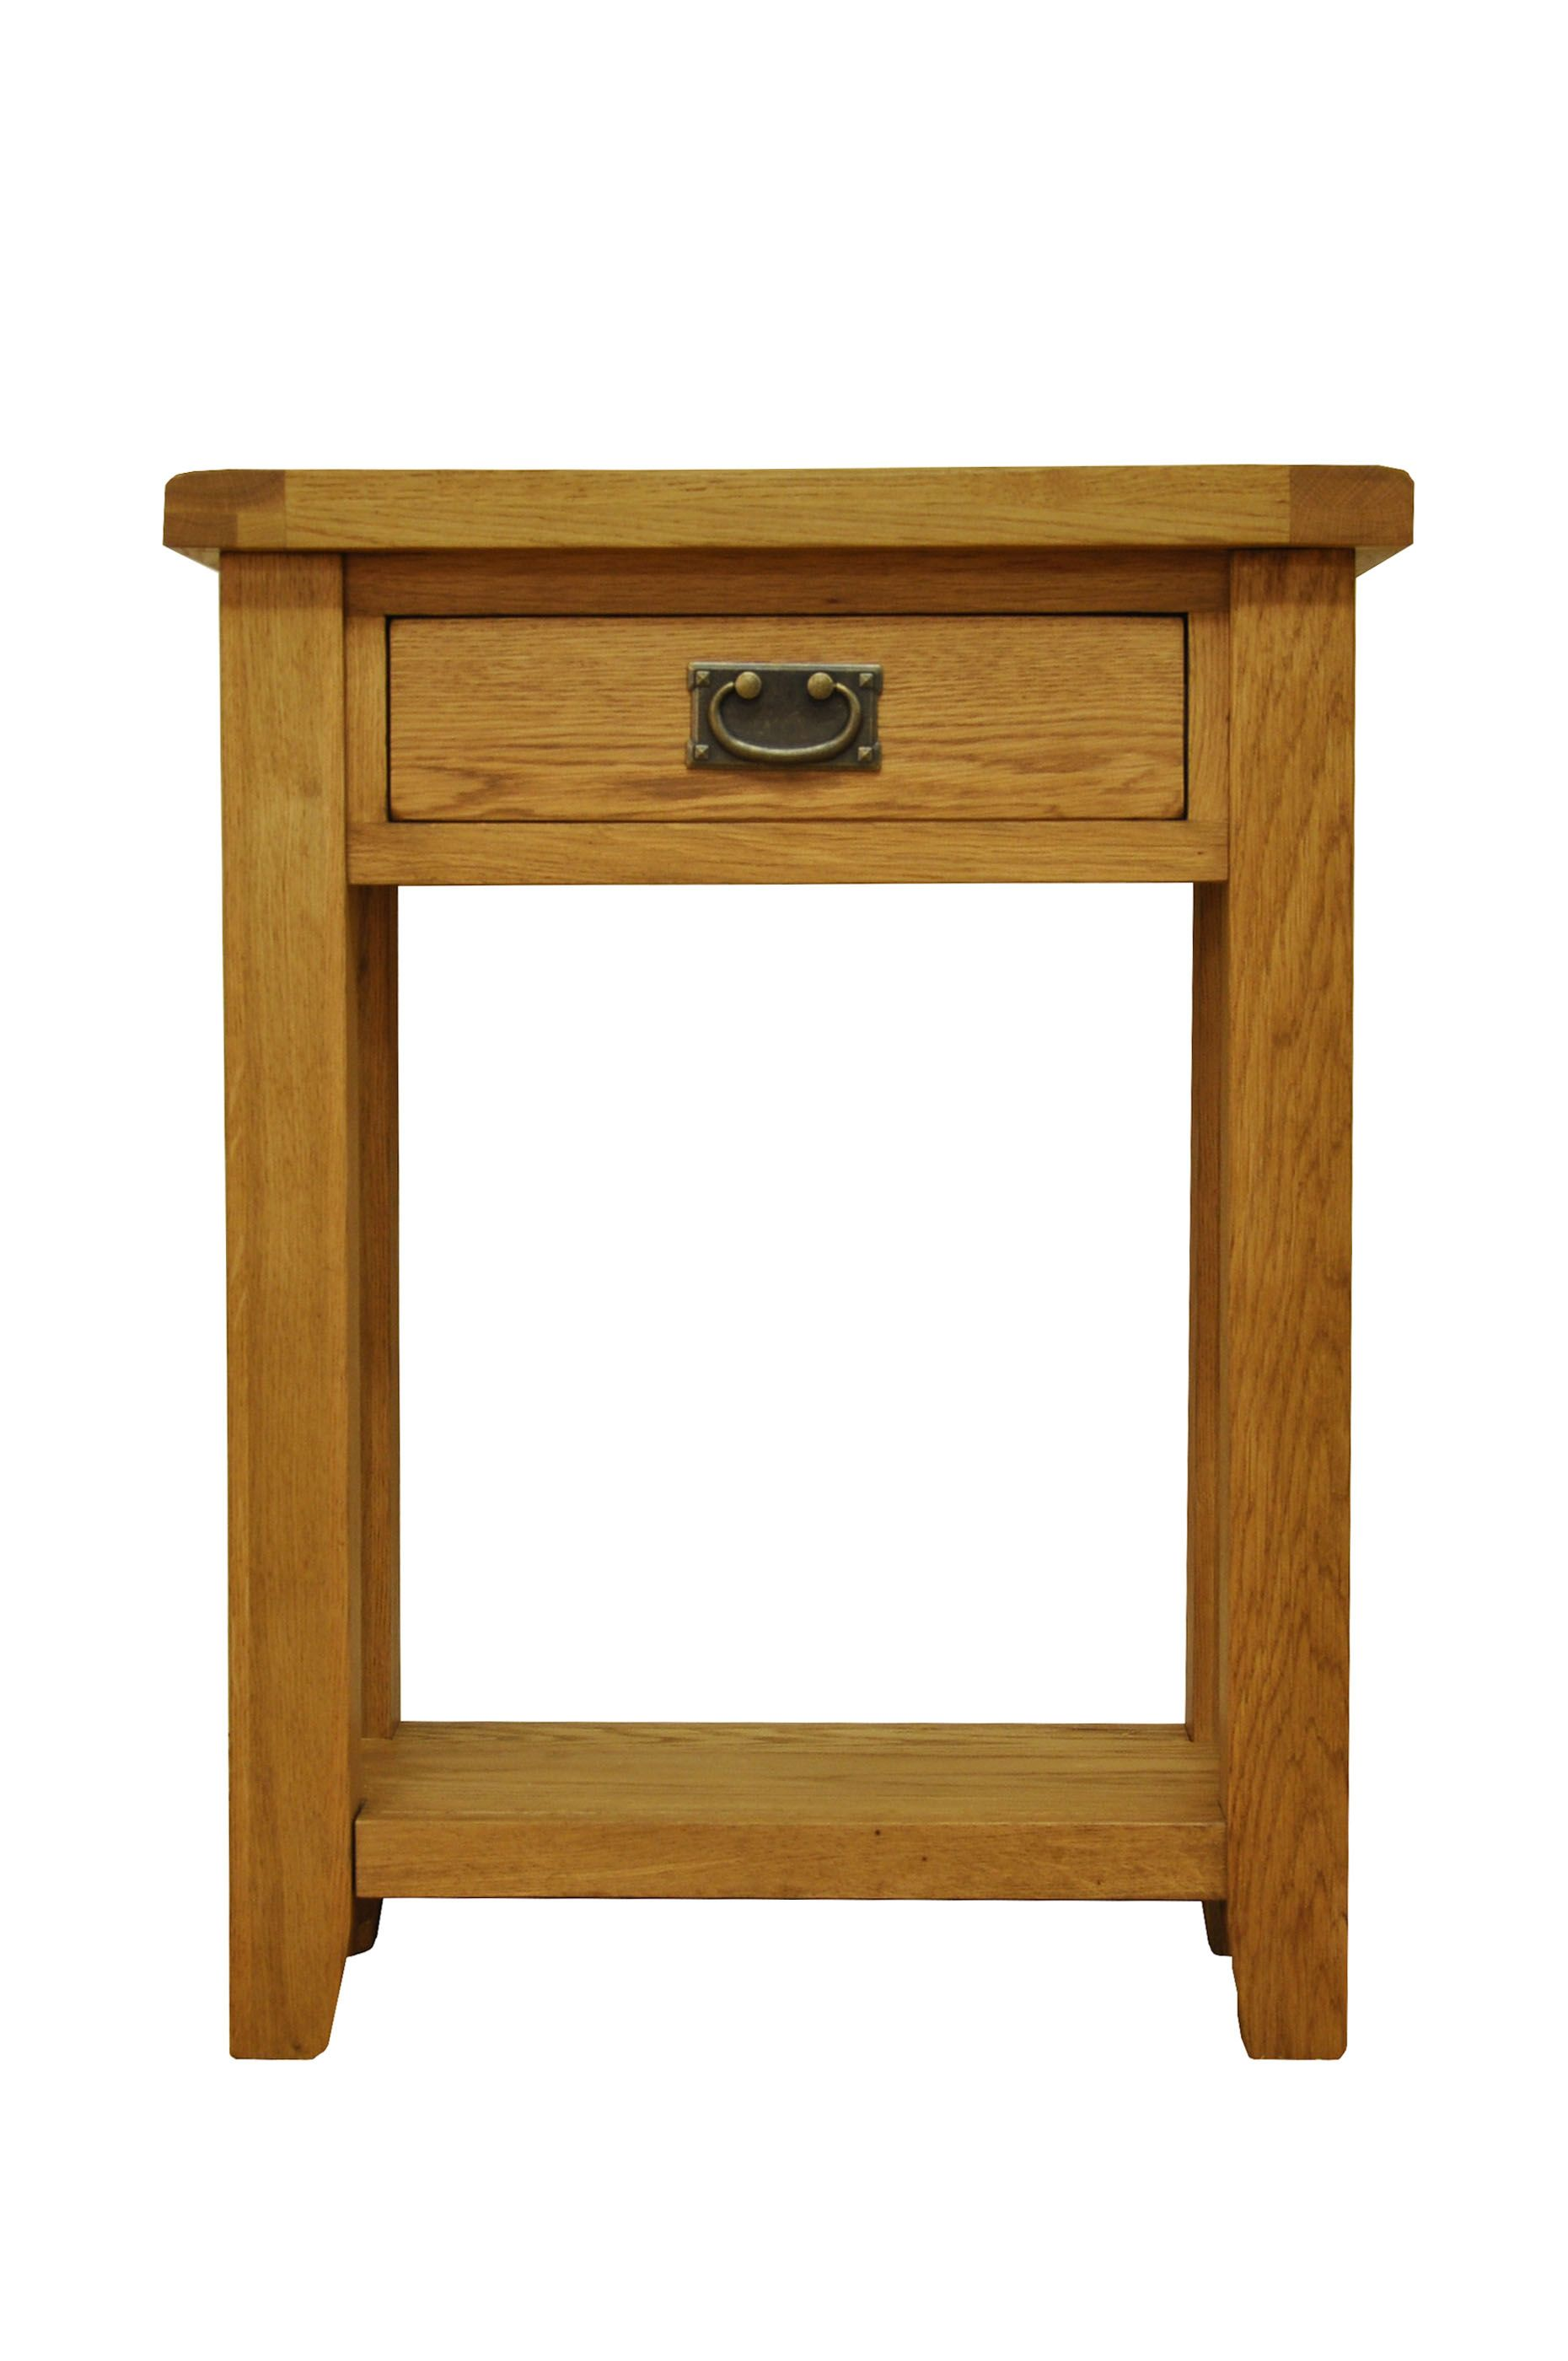 Staffordshire Oak Telephone Table A Stunning Range Finished In Traditional Rugger Brown Wax For That Rustic Look